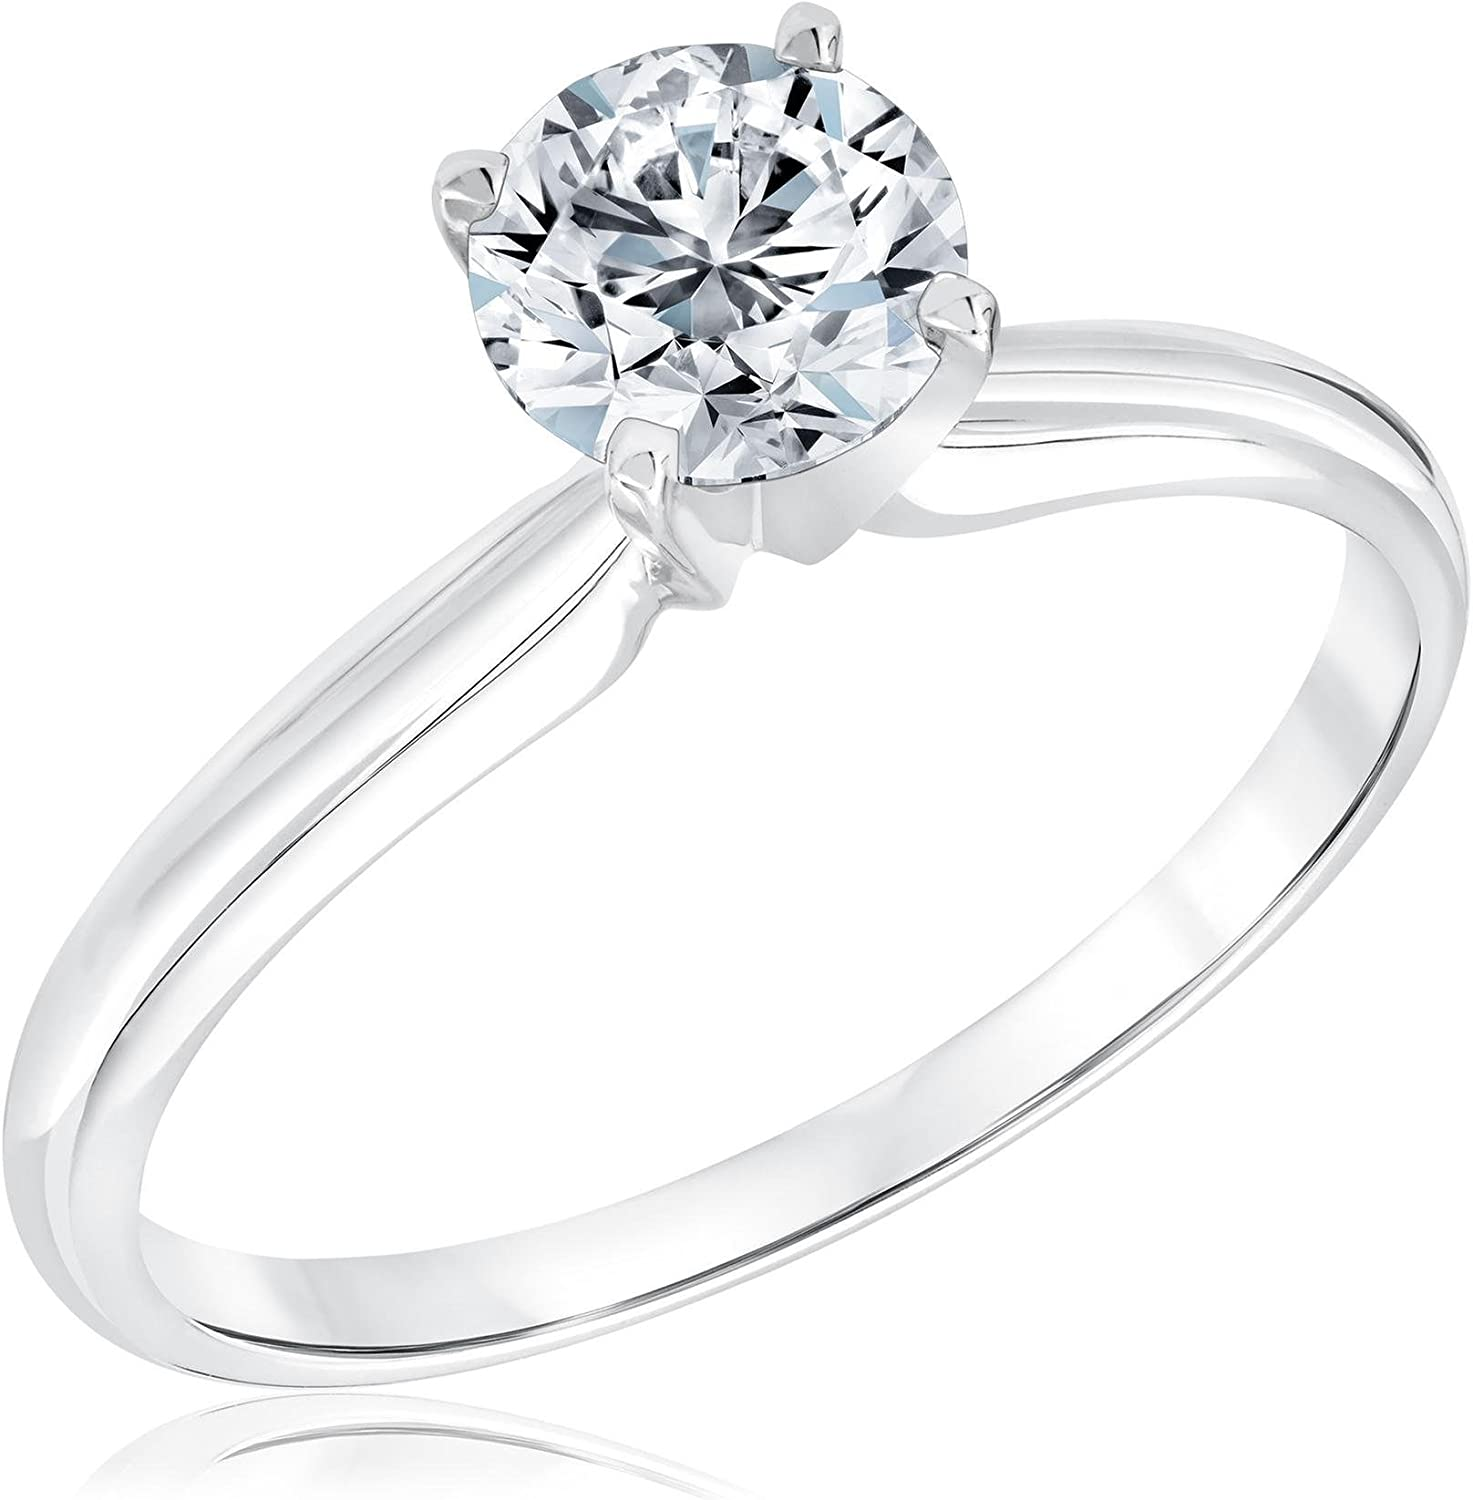 Classic Sales results No. 1 Round Diamond Solitaire shipfree Engagement Ring 4ct Size 9.5 3 -